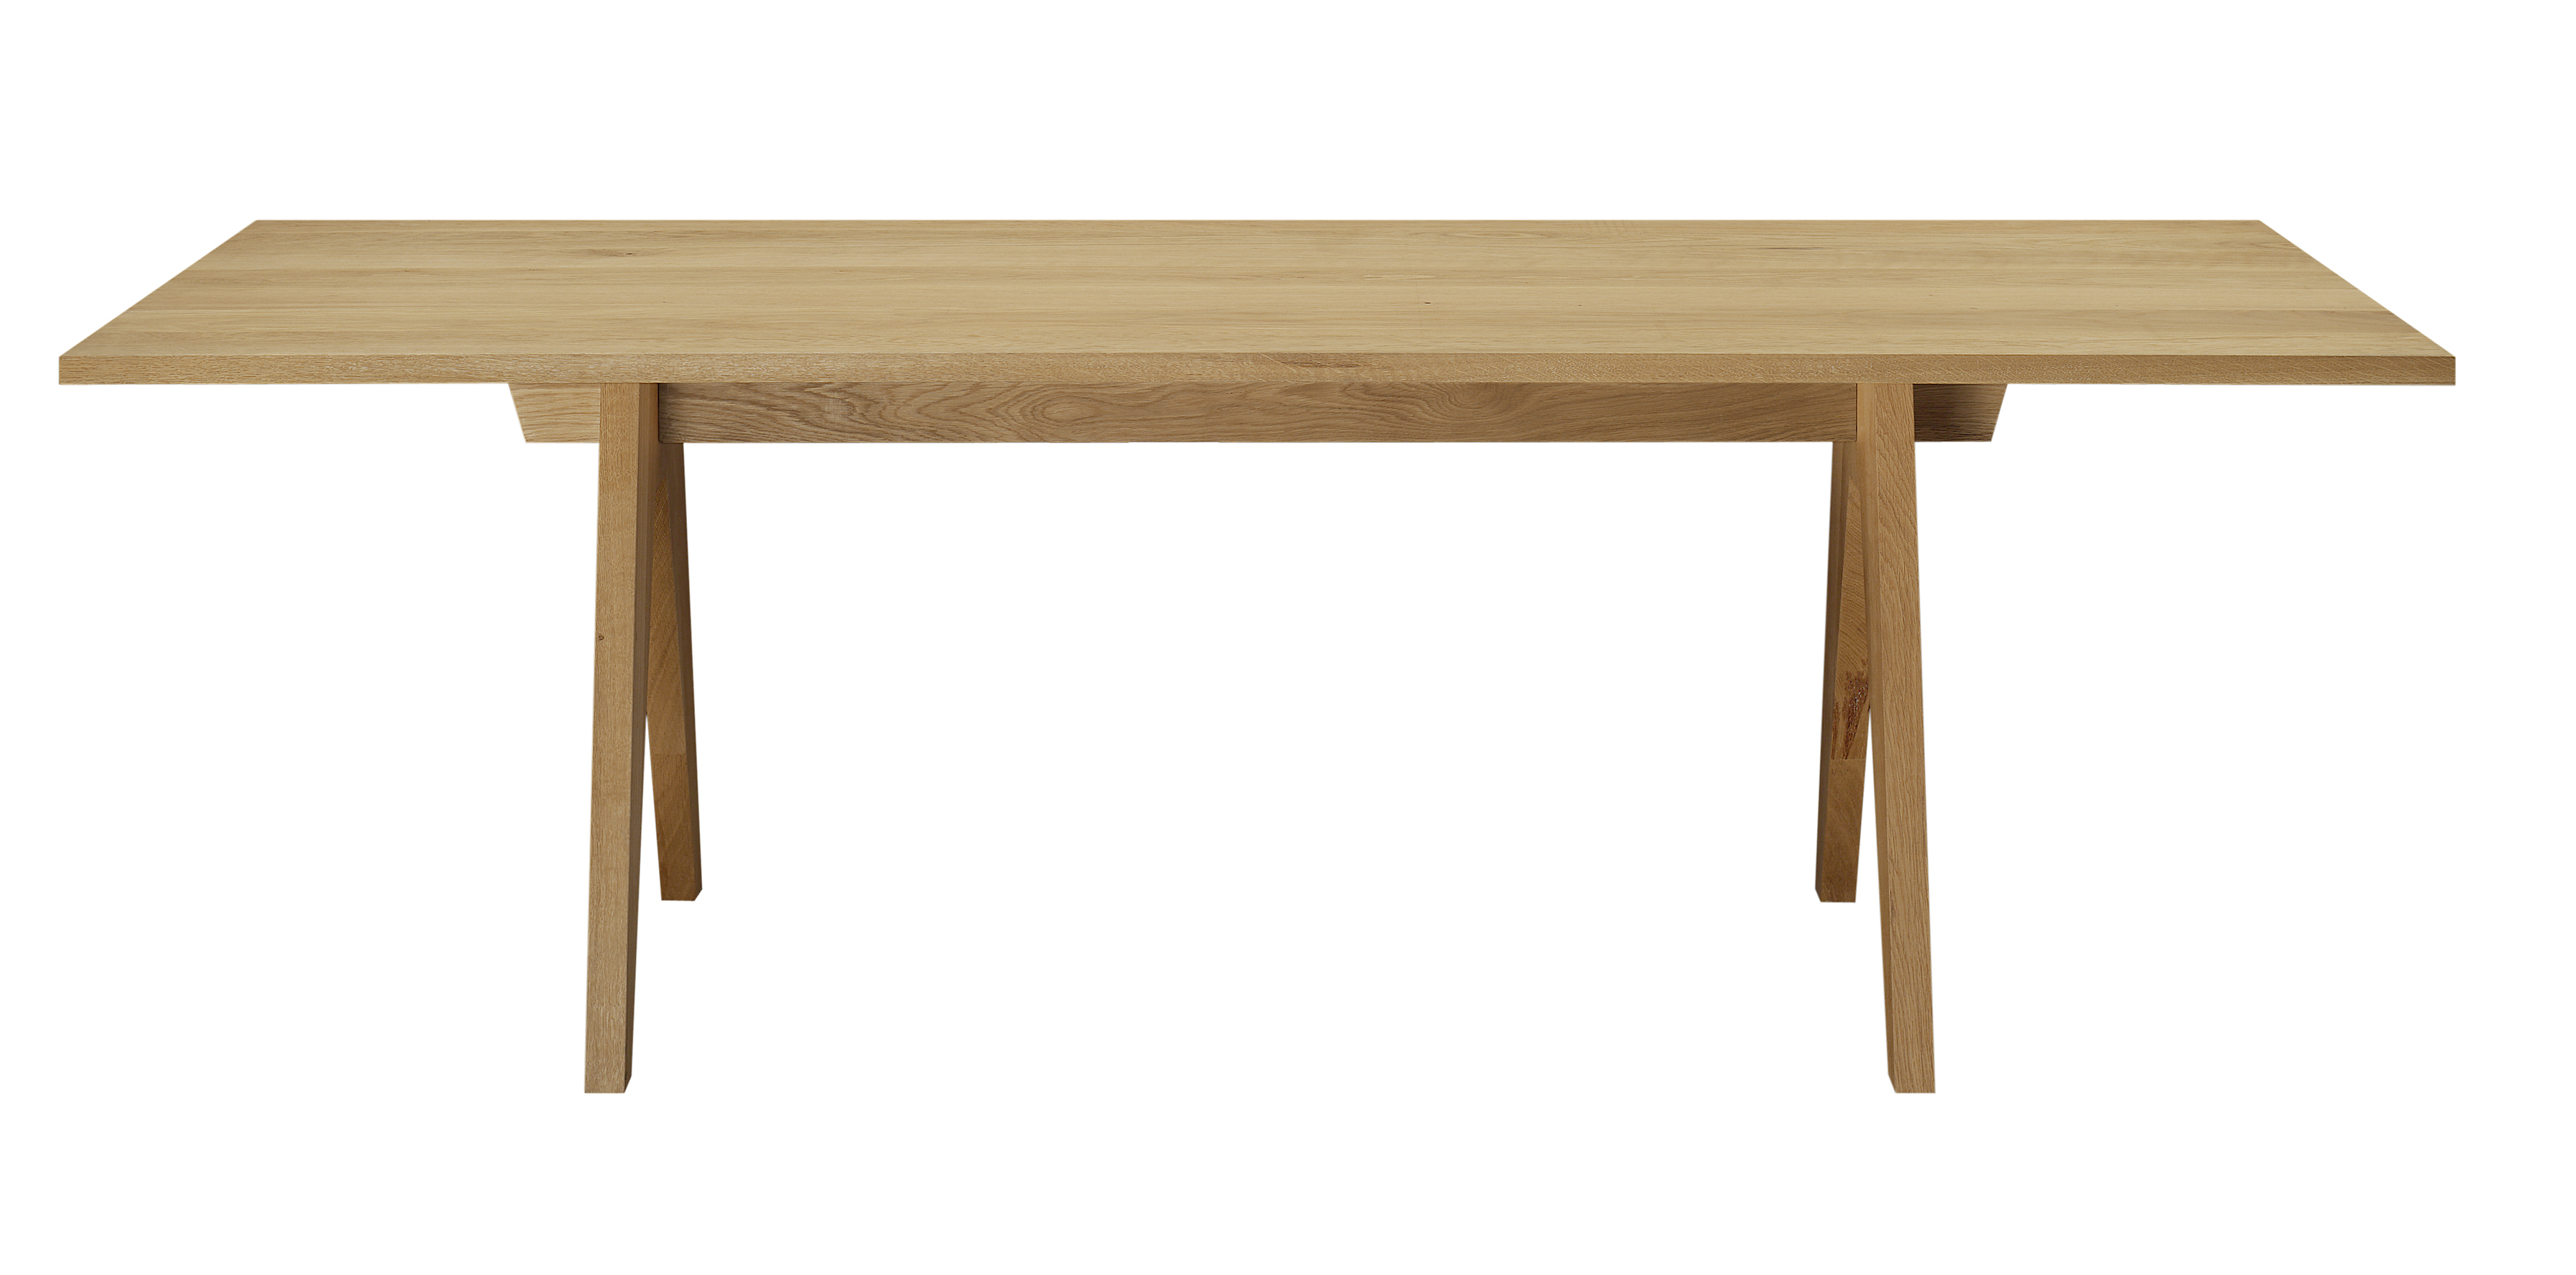 Solid Wood Table Alden By E15 Design Ferdinand Kramer